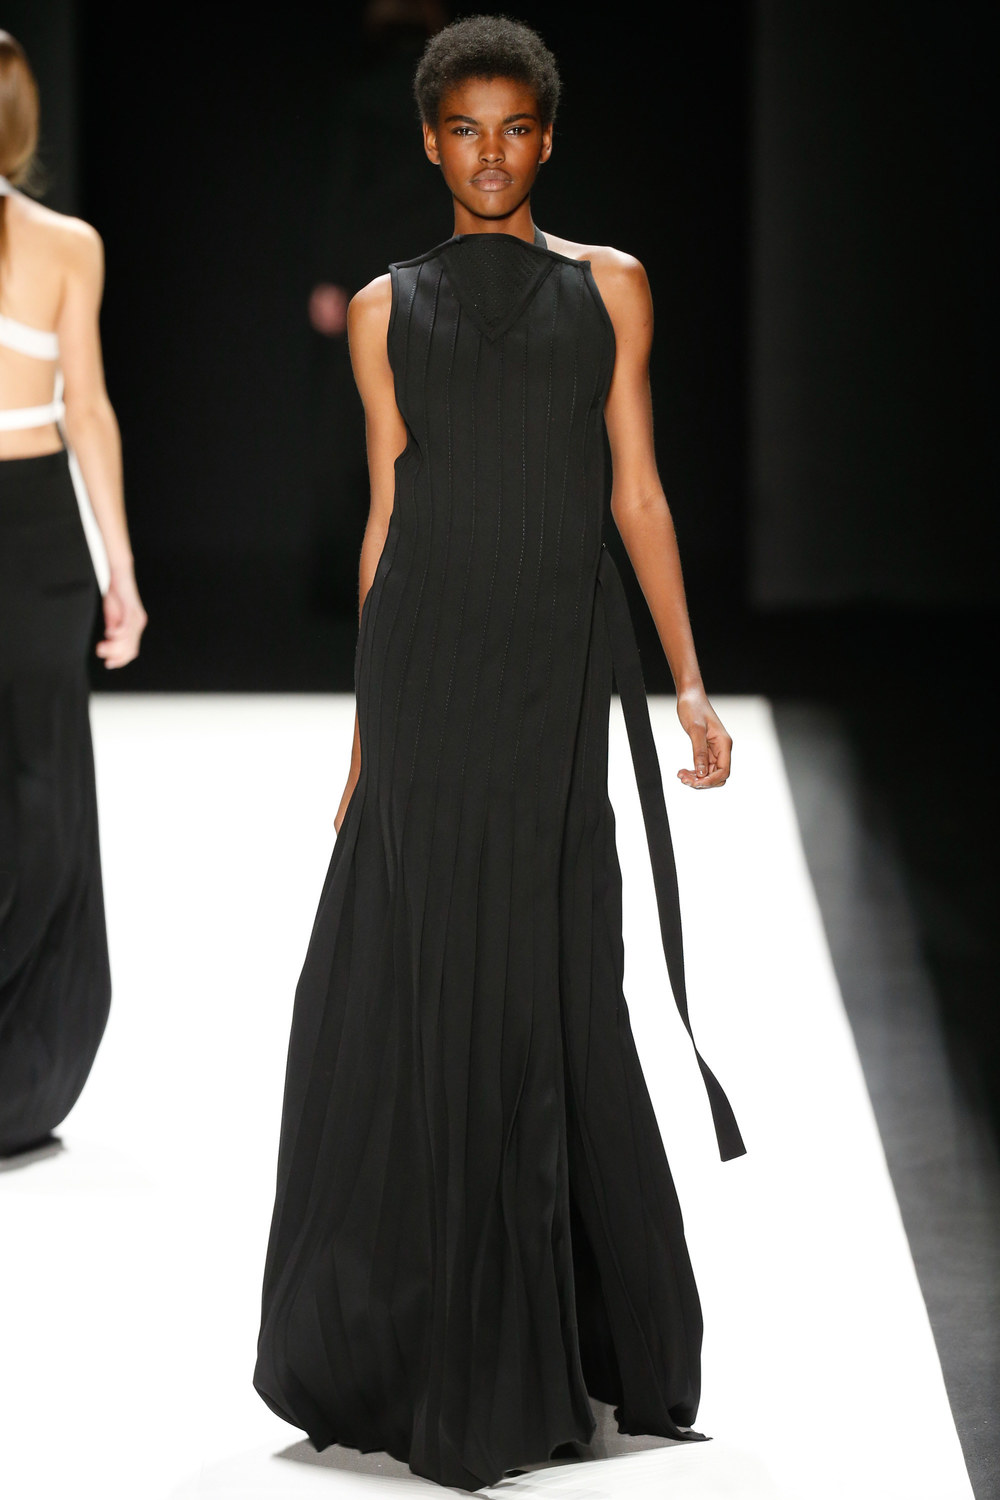 Vera-Wang-Fall-2016-New-York-Fashion-Week-1.jpg